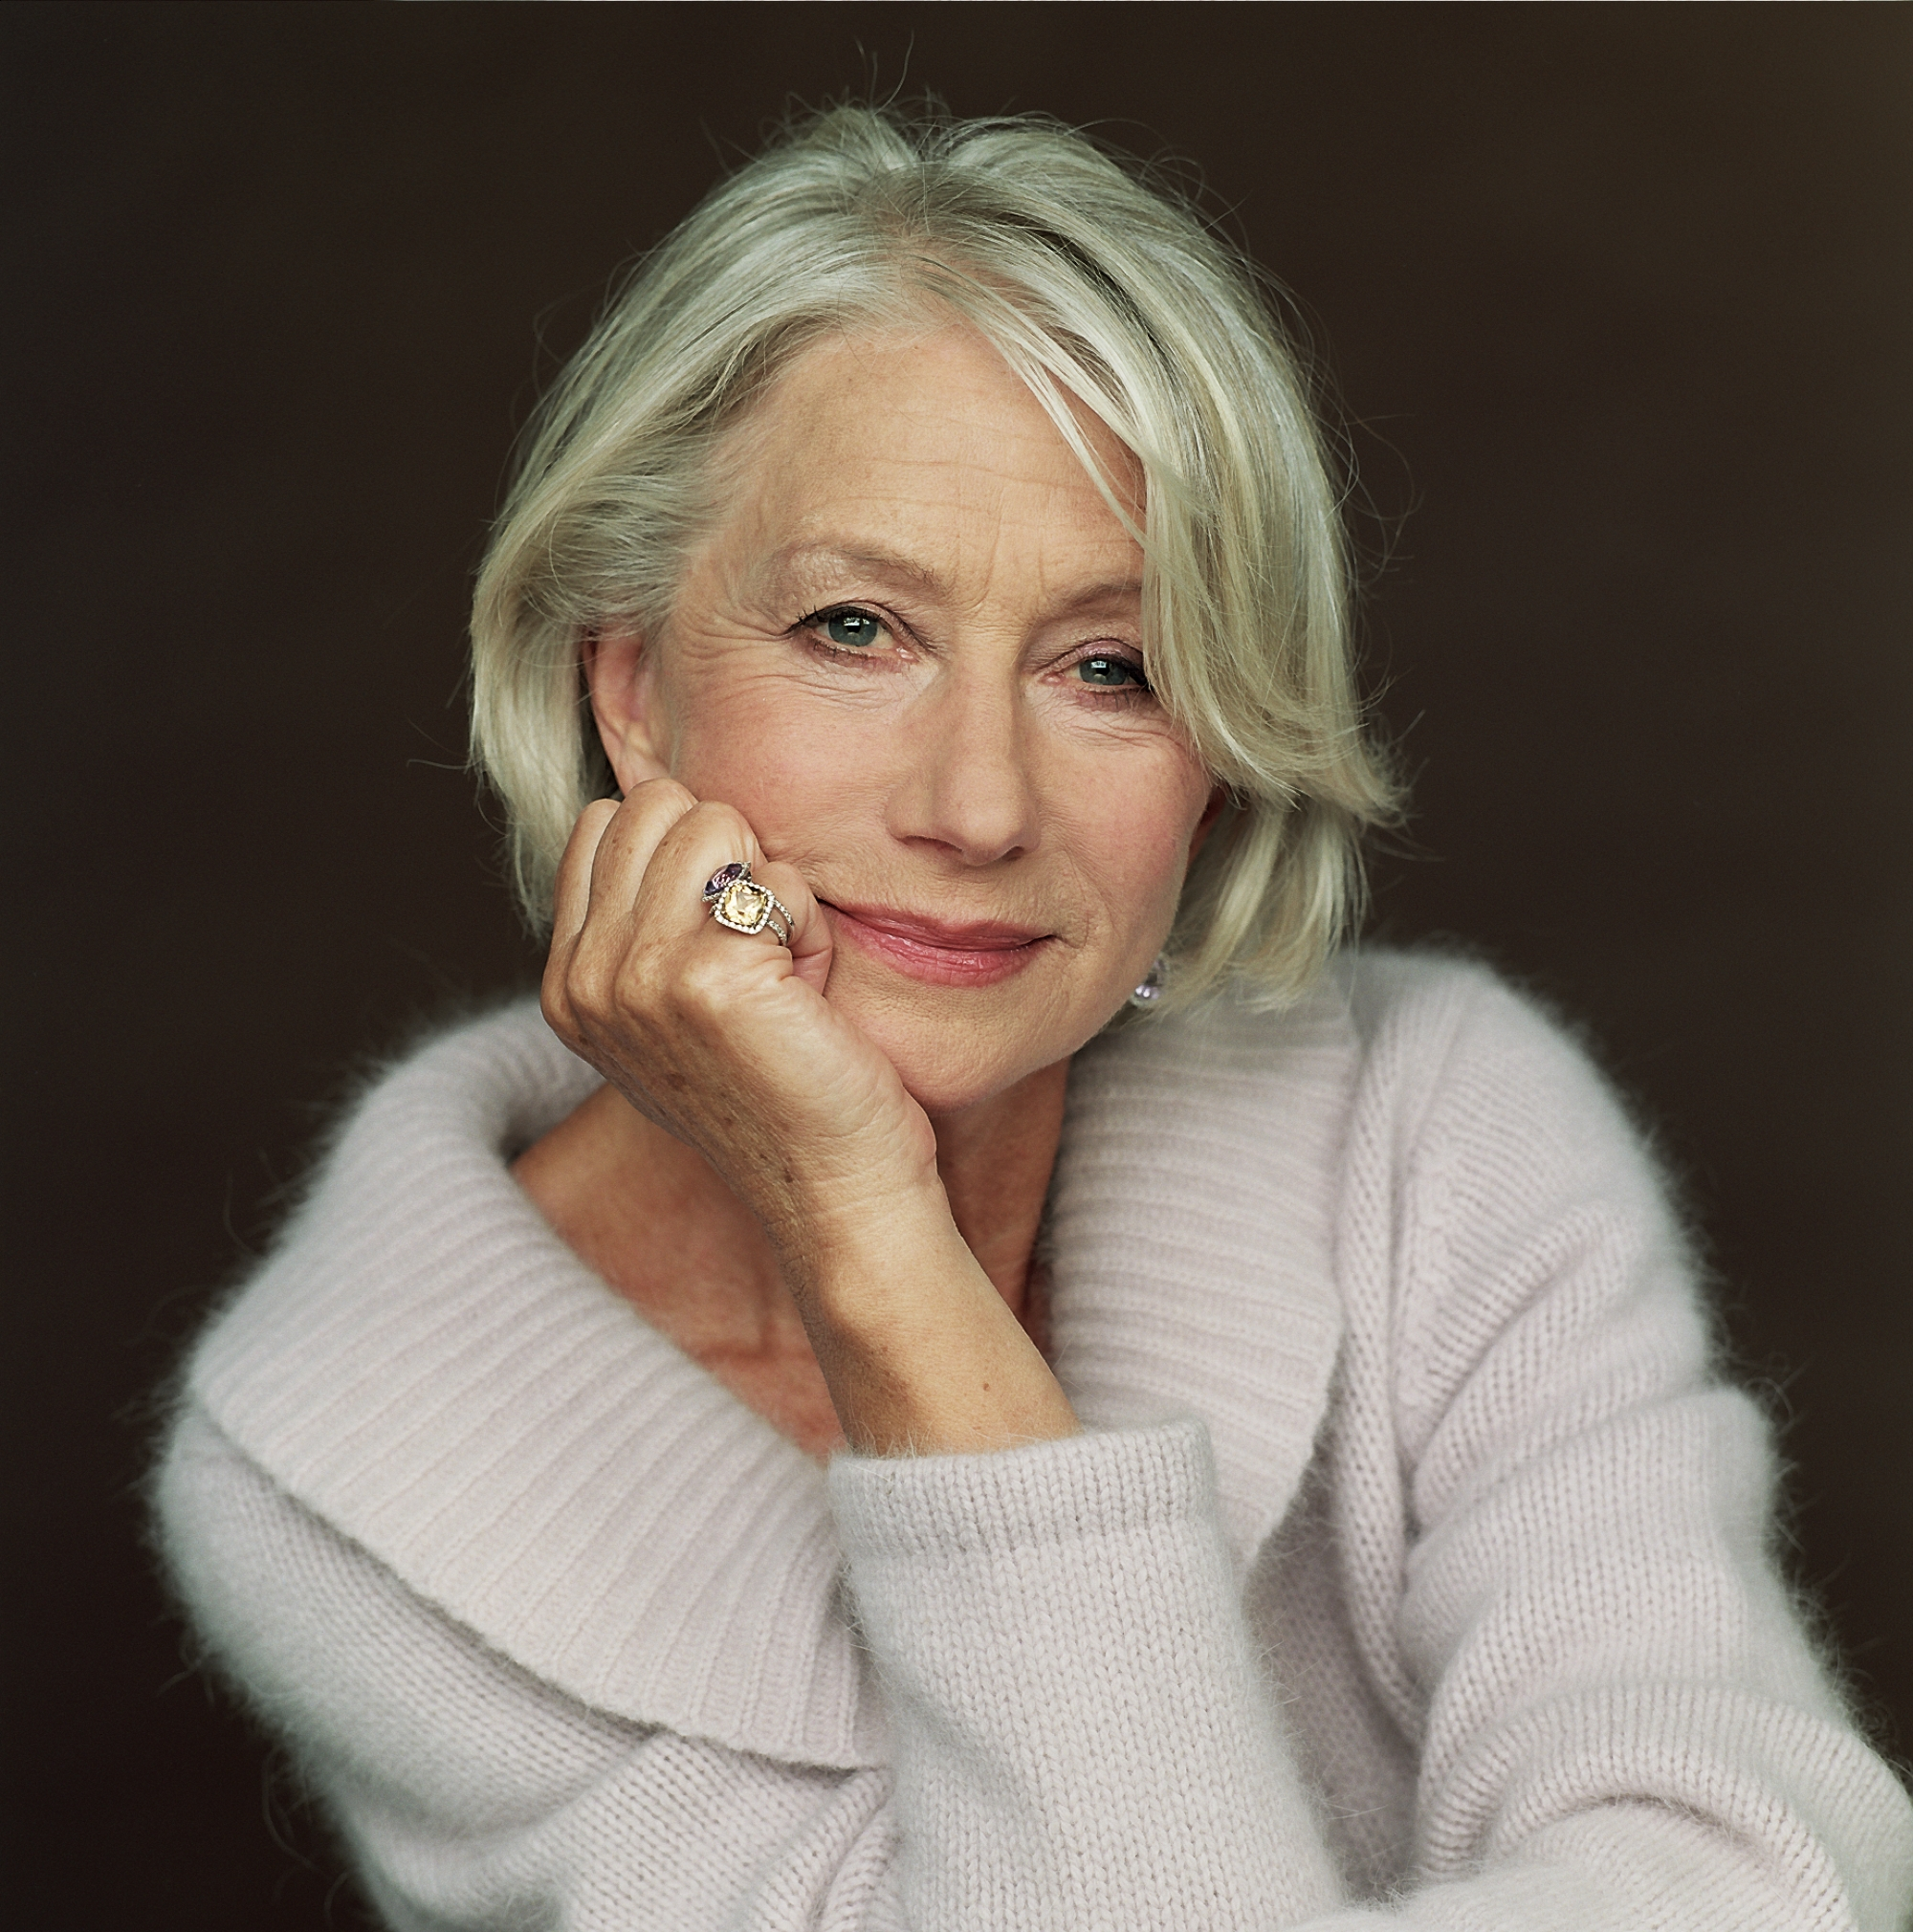 Helen Mirren Helen Mirren Photo 32853620 Fanpop